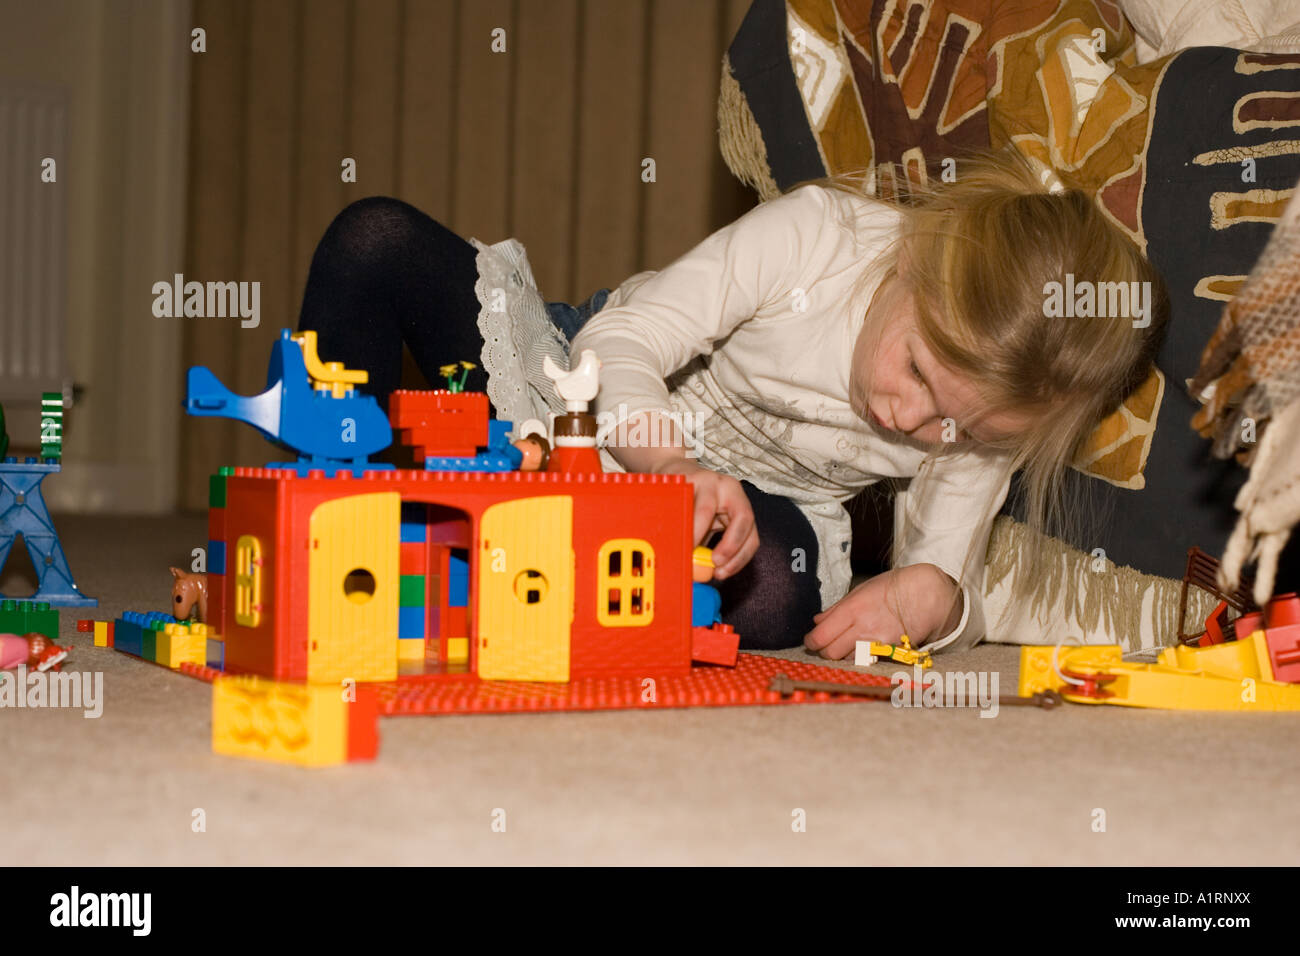 Duplo Stock Photos Duplo Stock Images Page 3 Alamy